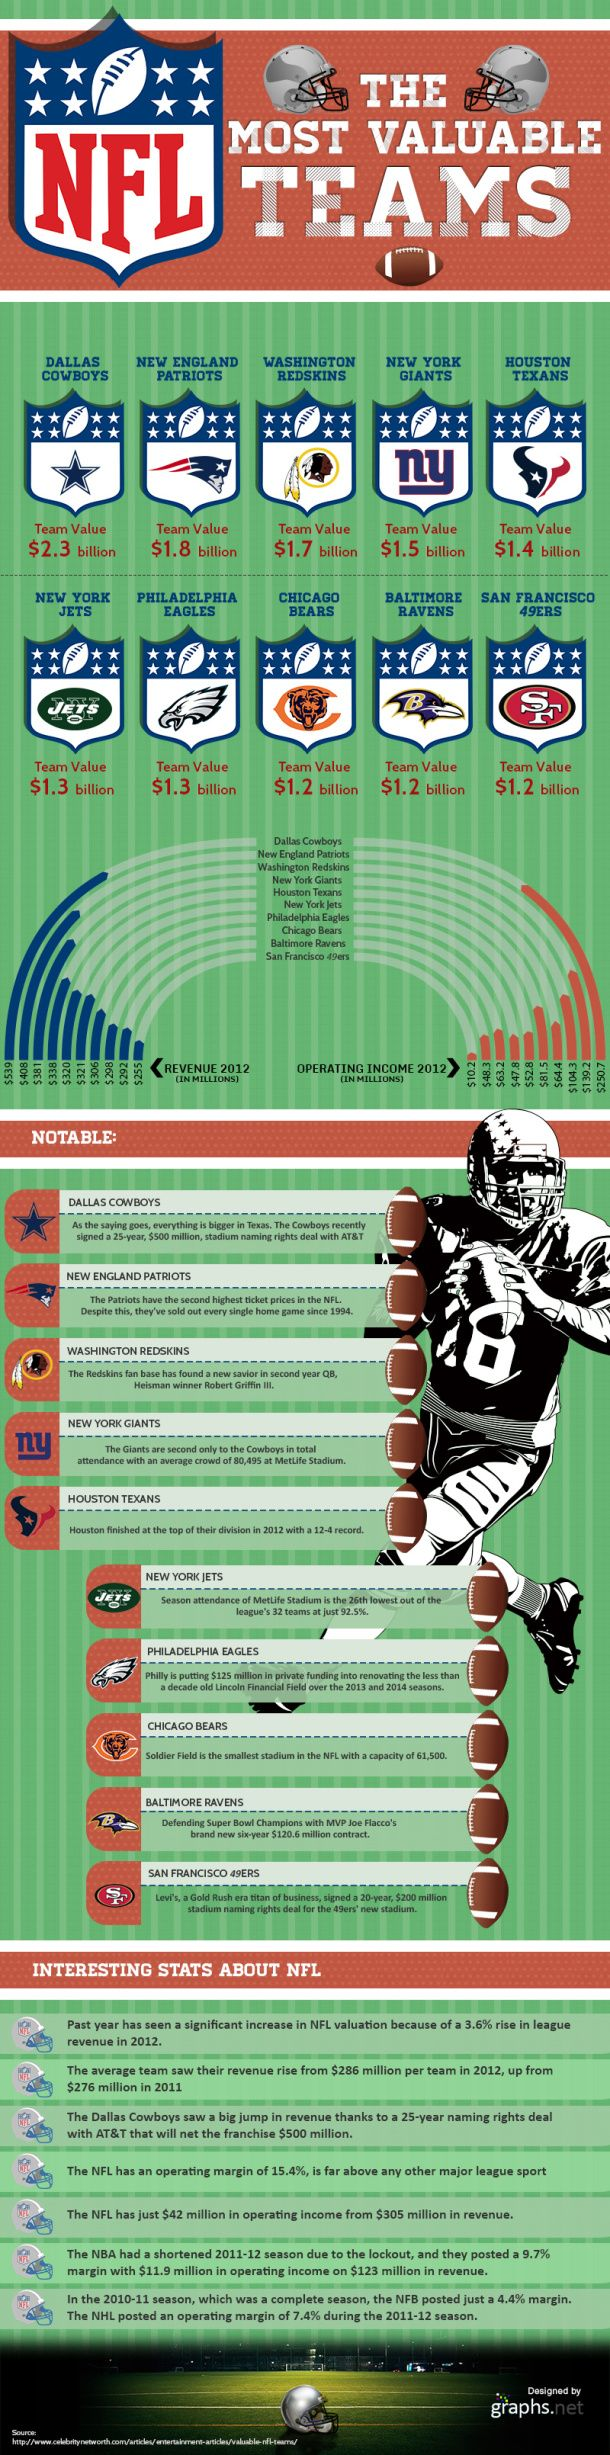 NFL: The Most Valuable Teams [INFOGRAPHIC] #NFL #valuable